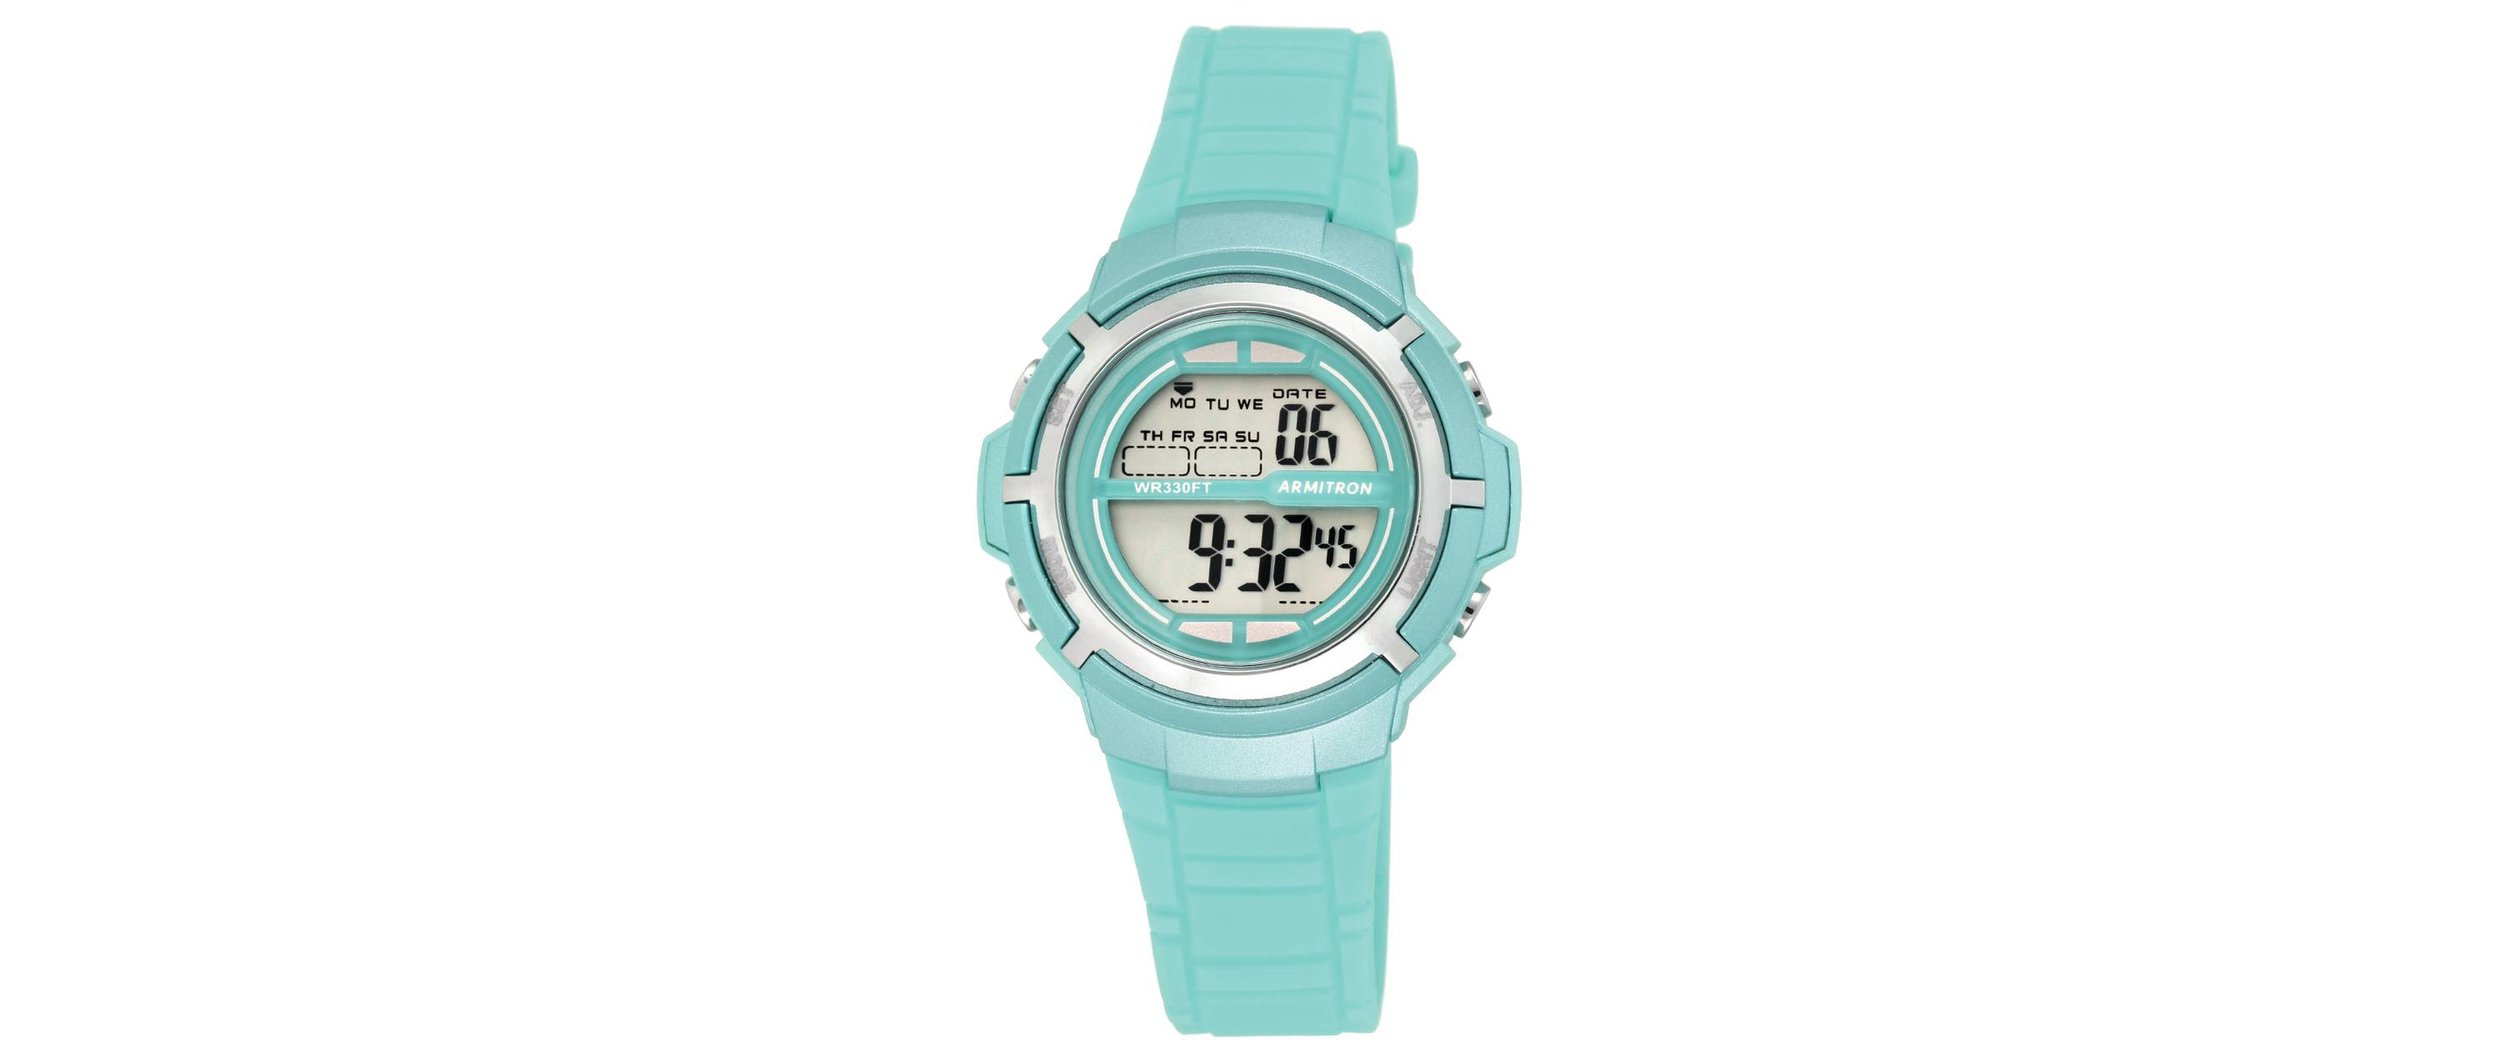 Target Pro-Sport Teal Digital Watch